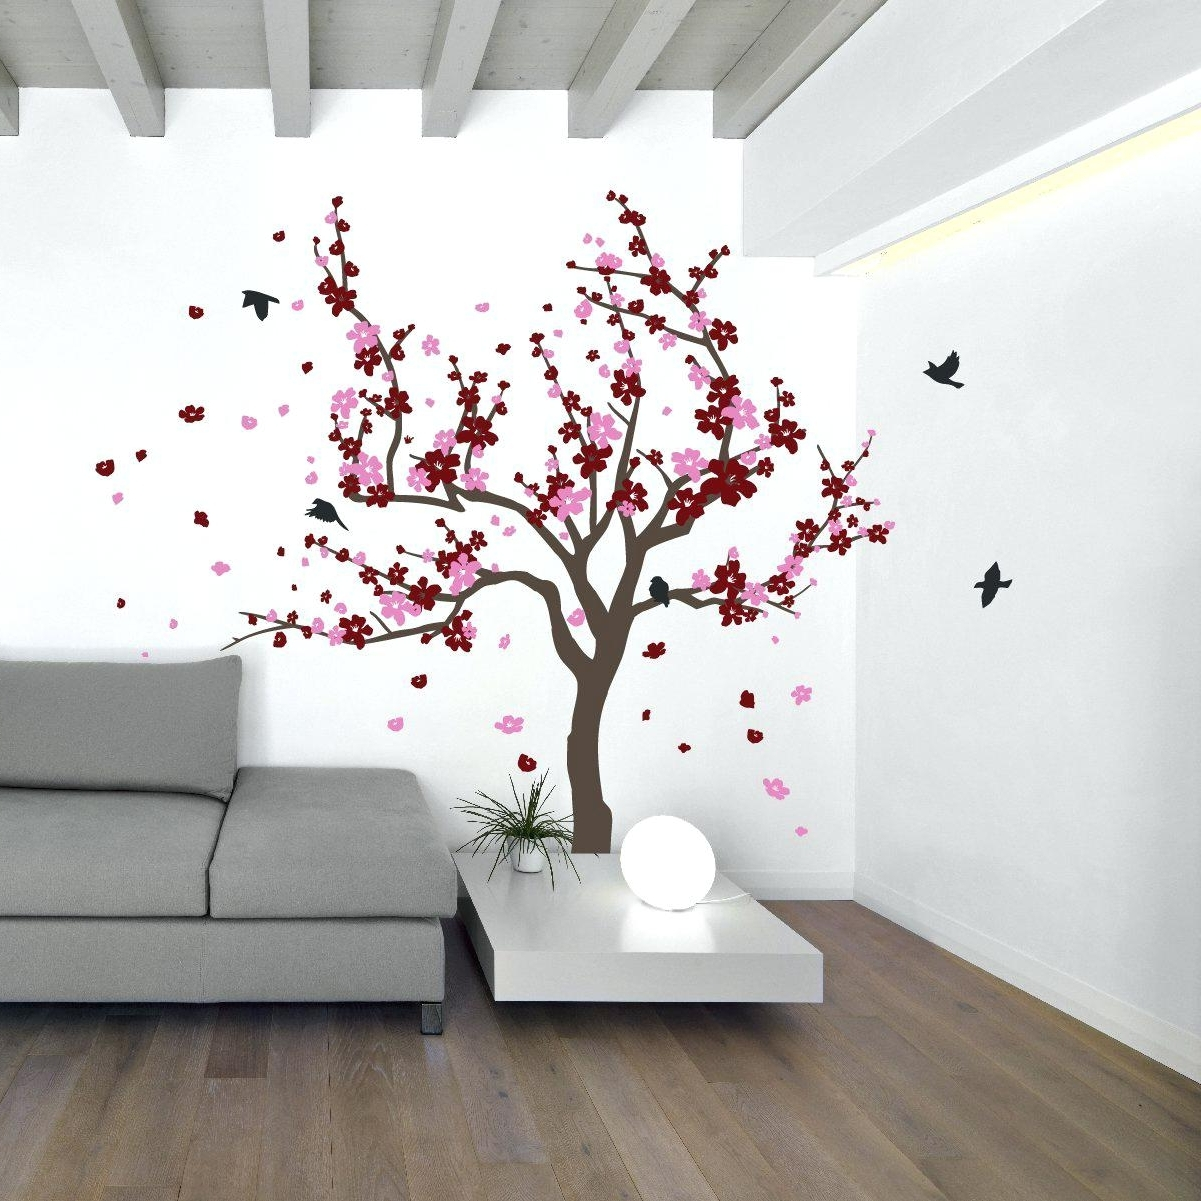 Blossom Tree Wall Decal Uk – Gutesleben In 2018 Cherry Blossom Wall Art (View 2 of 20)